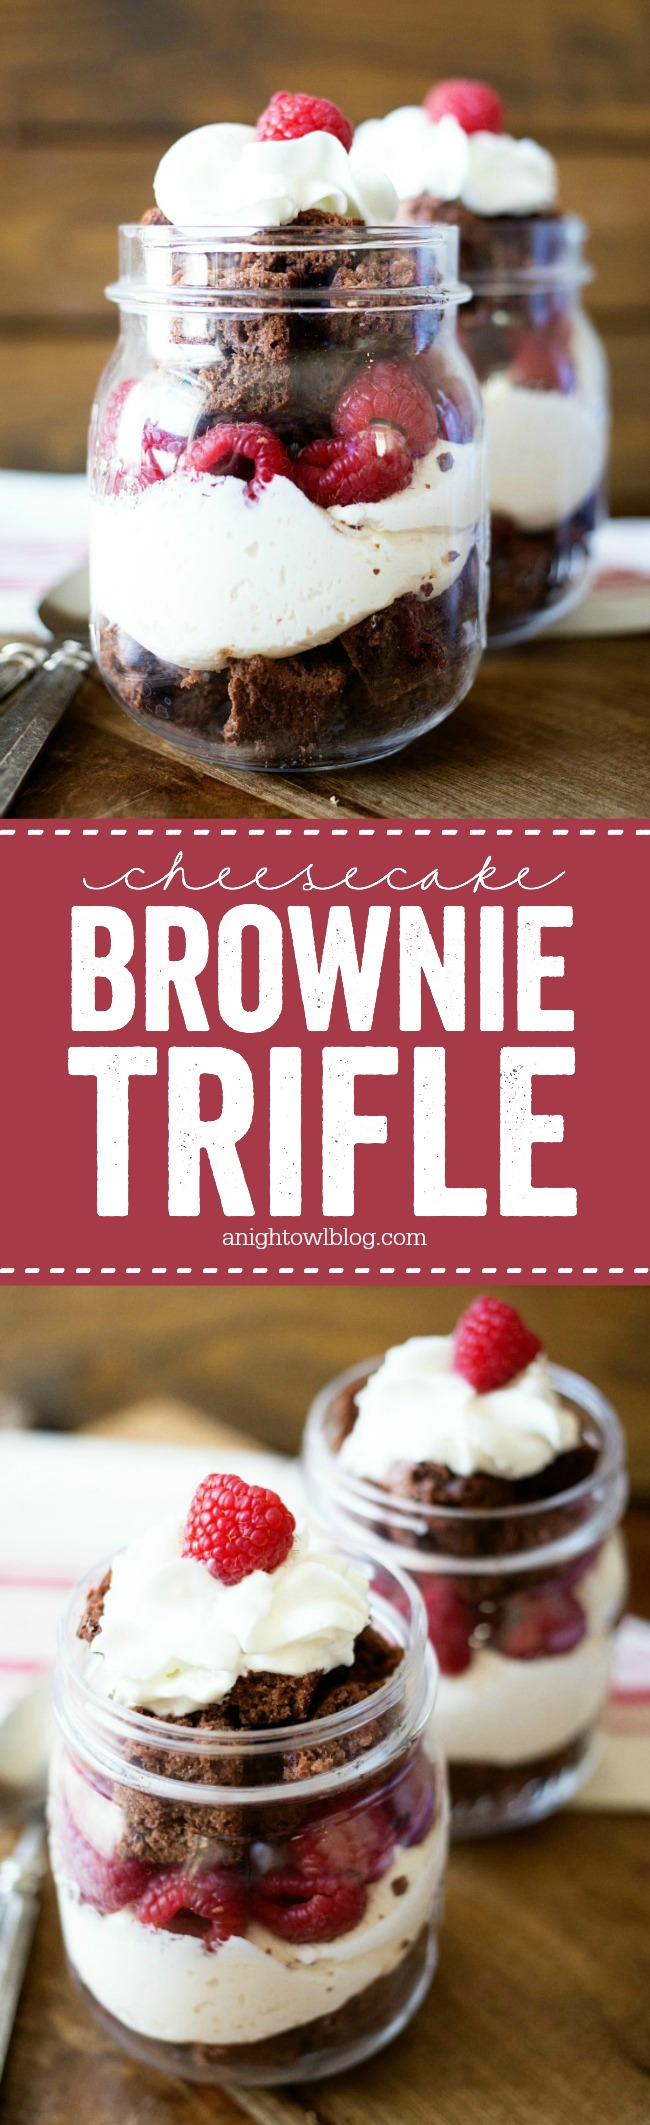 This Easy Cheesecake Brownie Trifle is a fun and delicious dessert for Valentines or any special occasion!